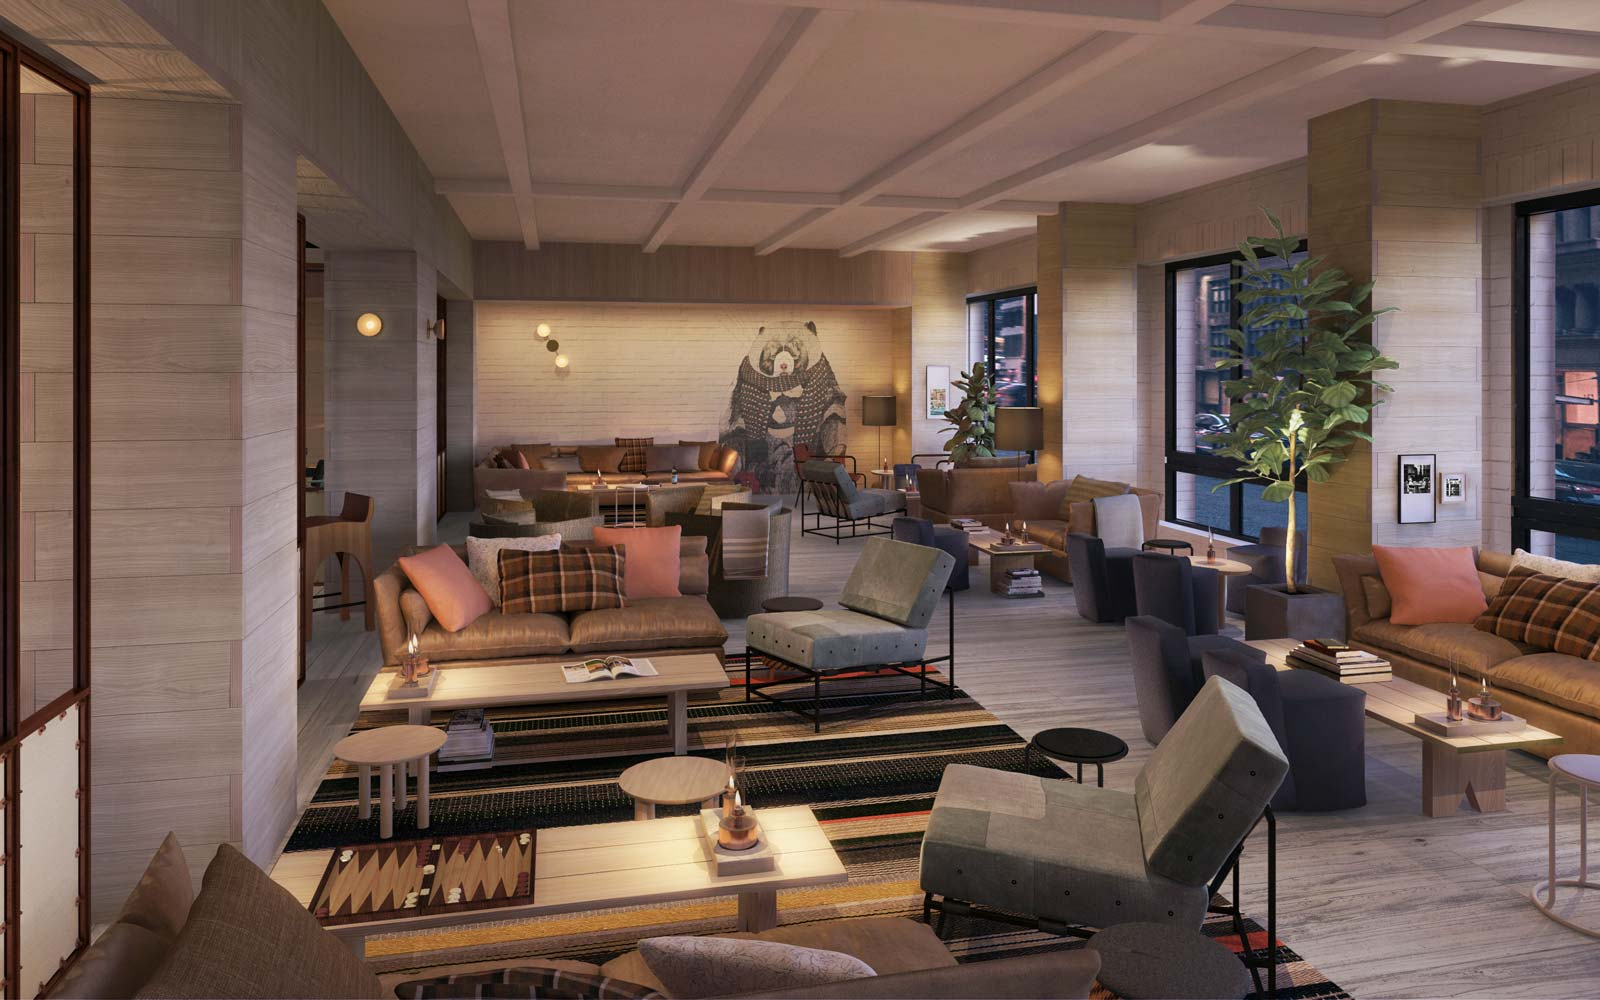 new york city 39 s largest rooftop bar is about to open. Black Bedroom Furniture Sets. Home Design Ideas